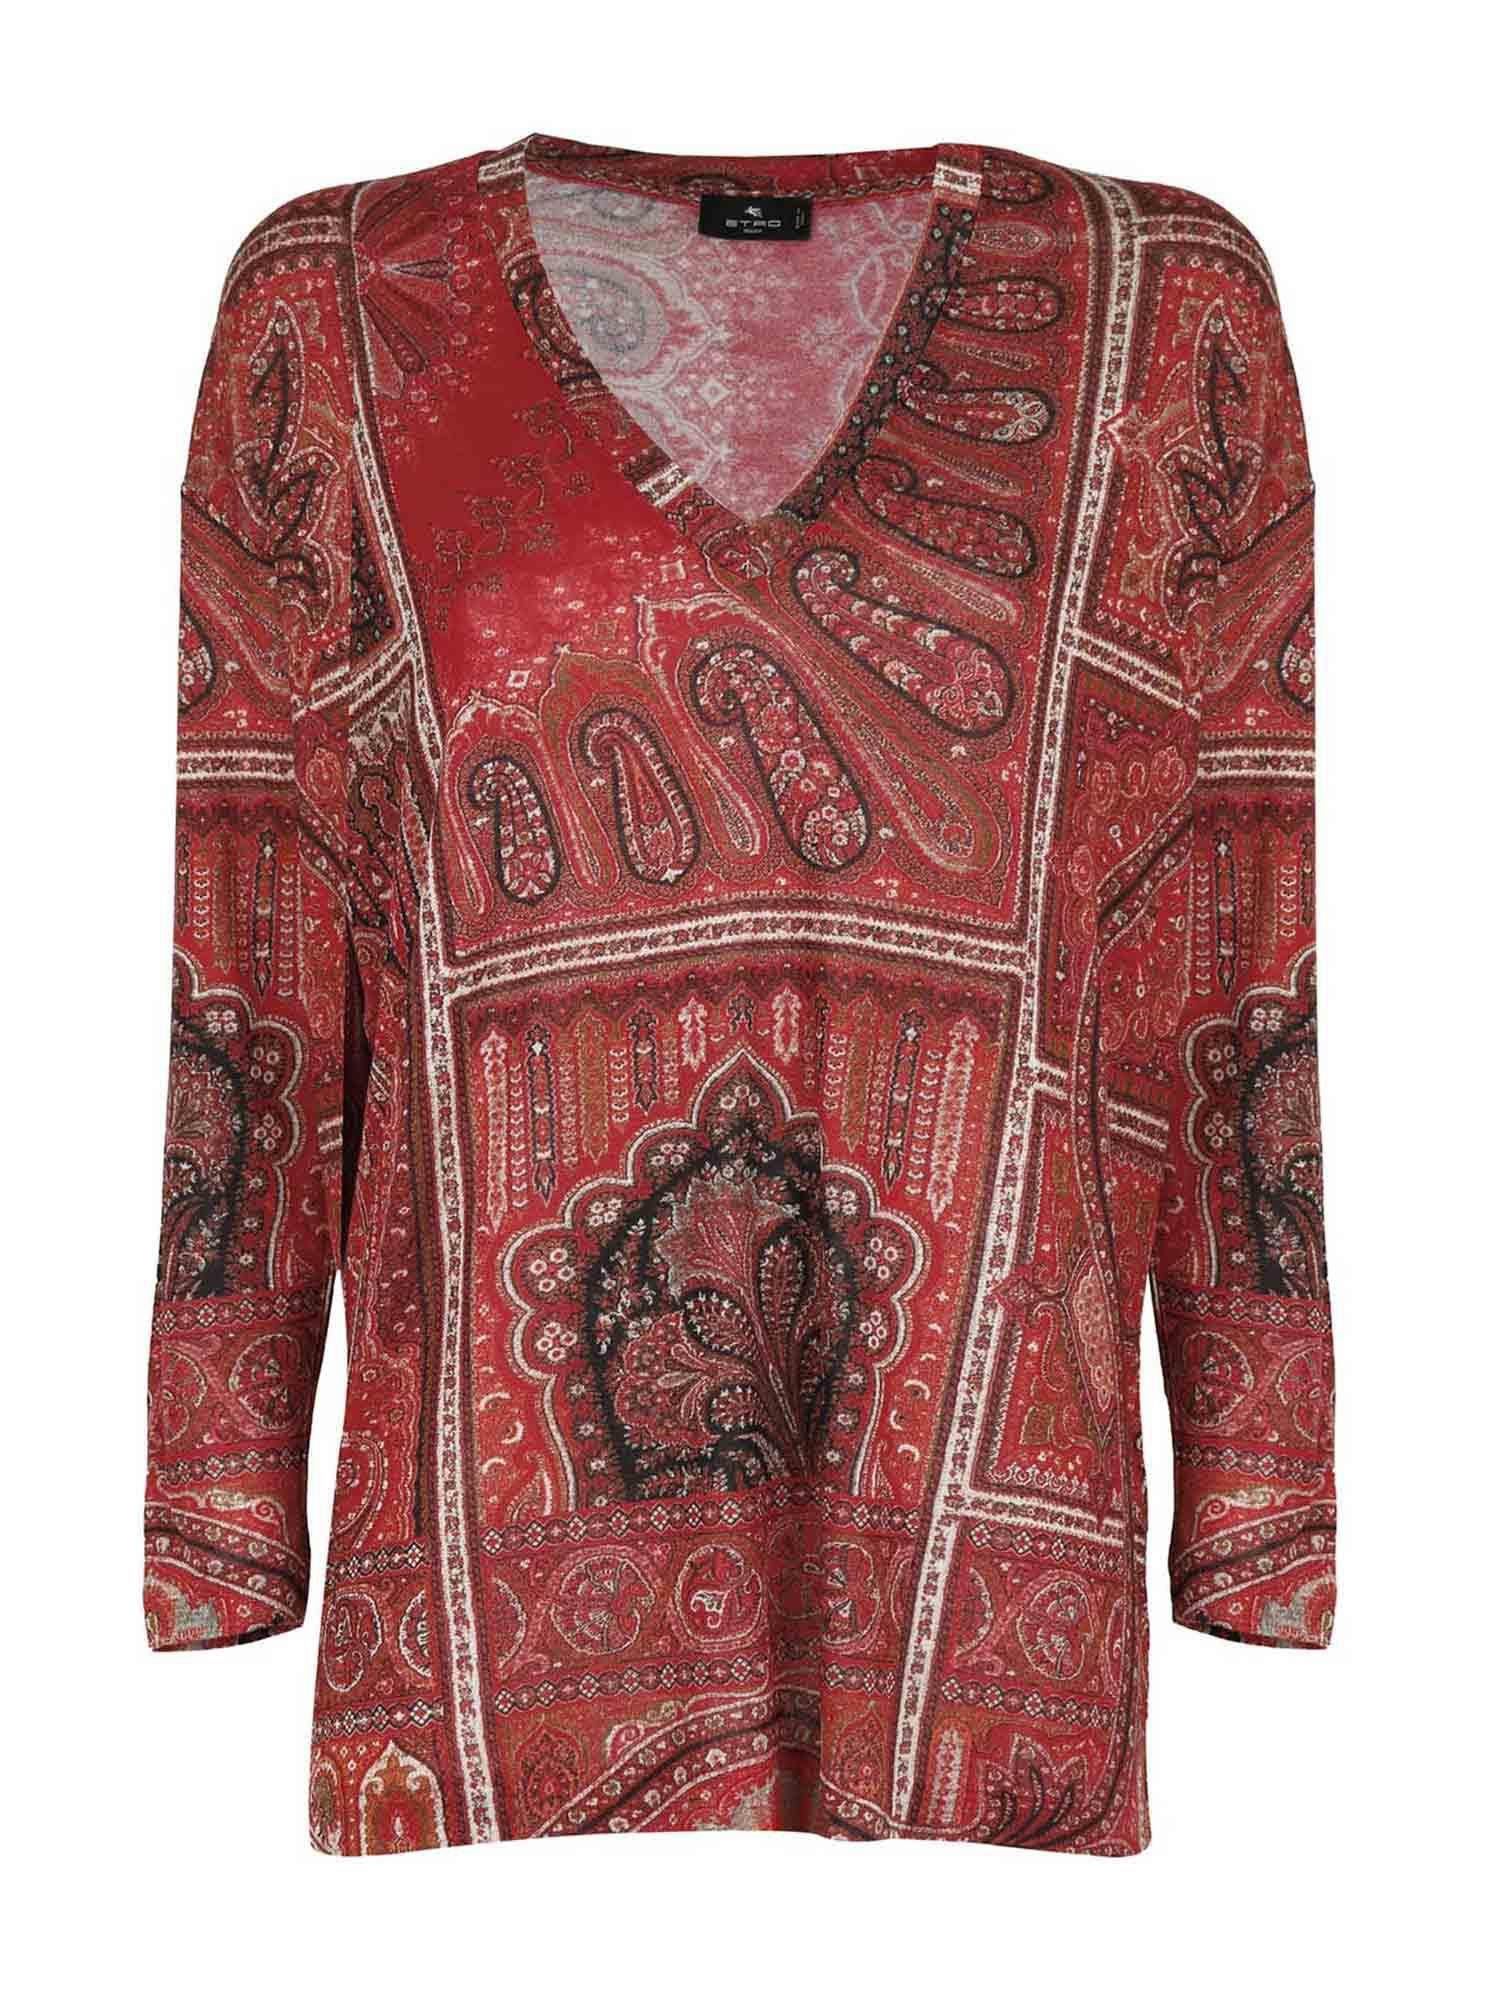 Etro PRINTED LONG SLEEVE T-SHIRT IN RED